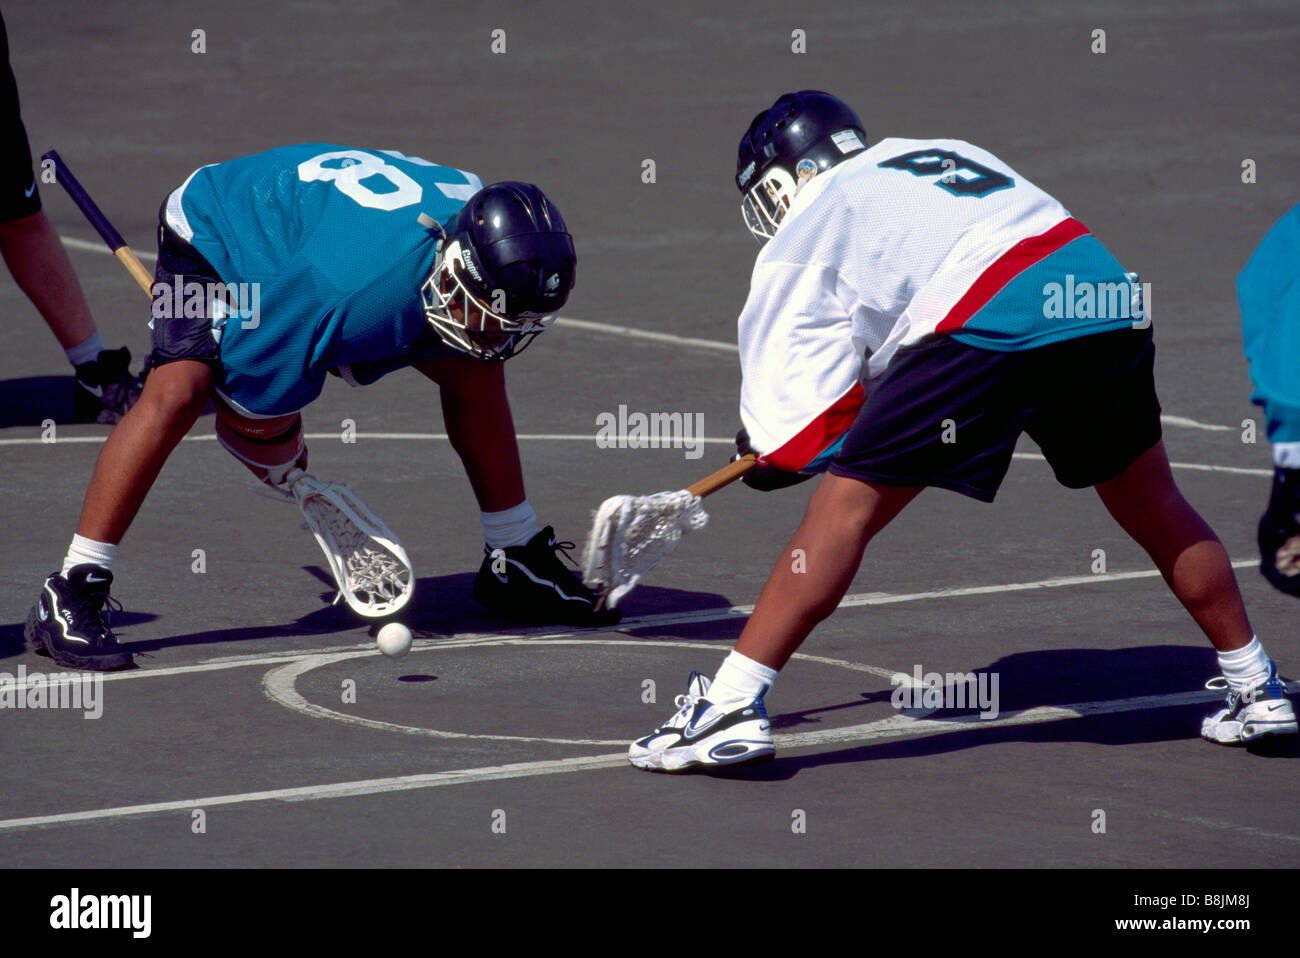 Native American Indians facing off in a Game of Lacrosse - Stock Image